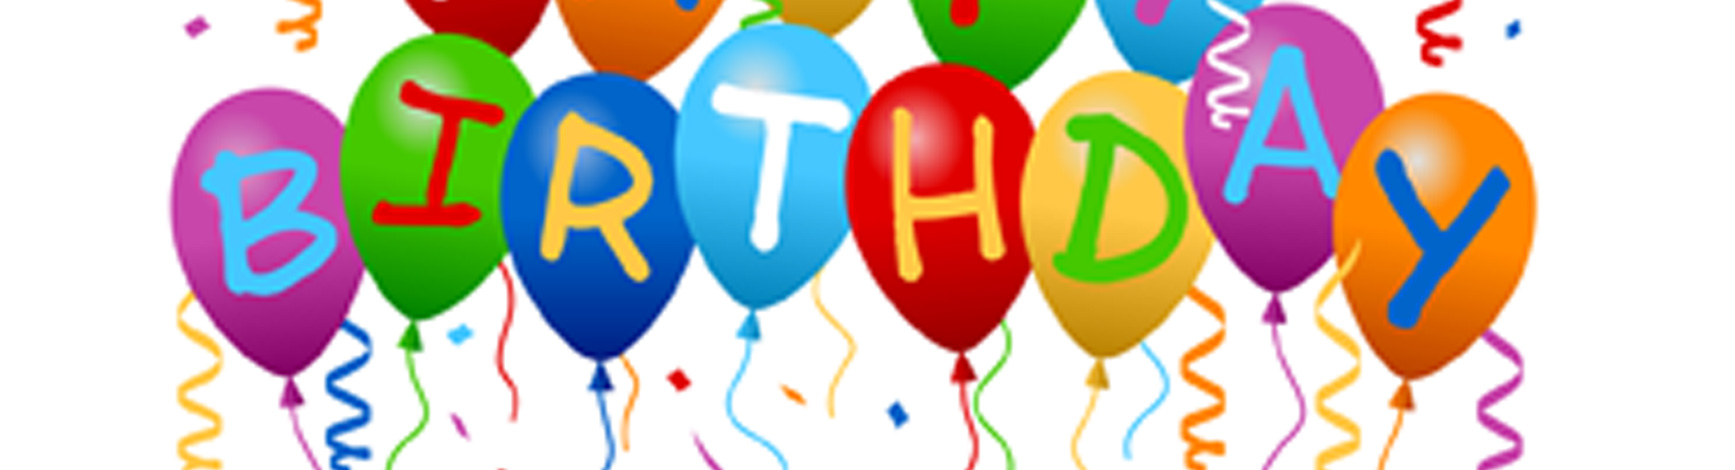 Happy Birthday Balloons Helium Air And Boxed